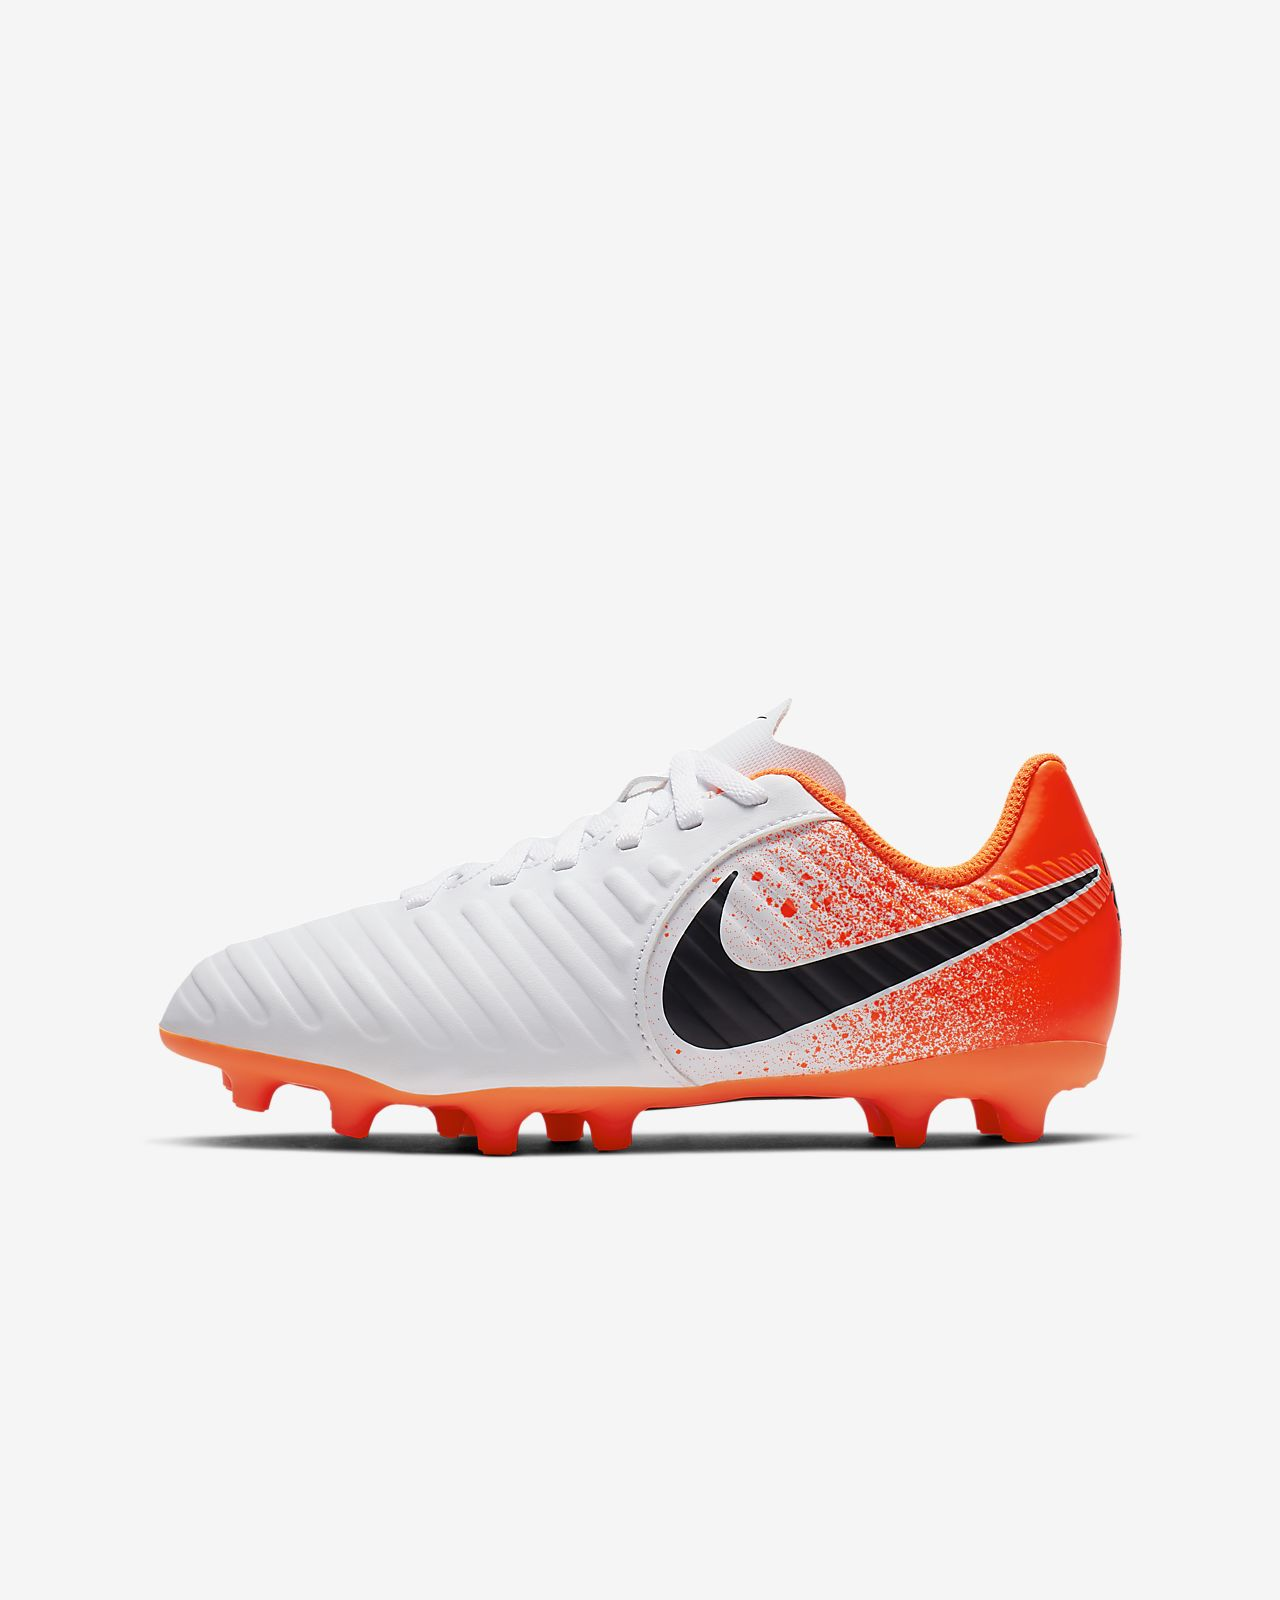 3a069885d Nike Jr. Tiempo Legend VII Club Toddler/Younger Kids' Firm-Ground ...